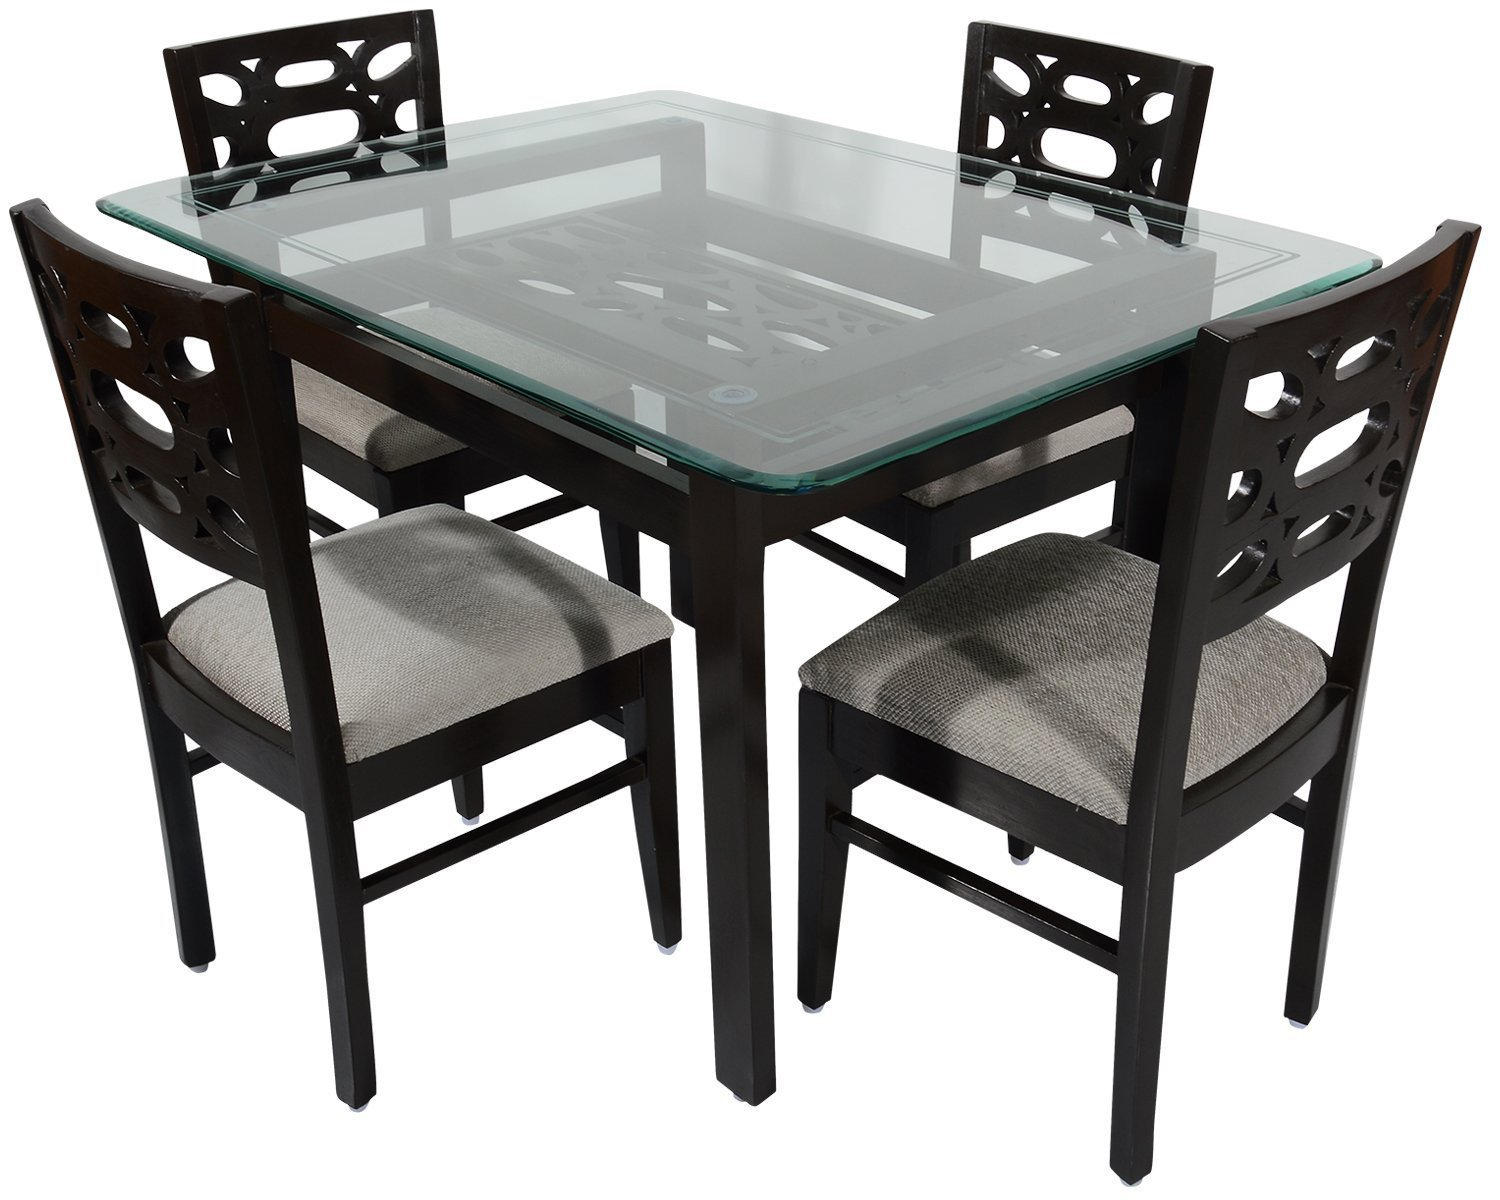 2 seater table and chairs b m black set rawat romania four dining muticolour